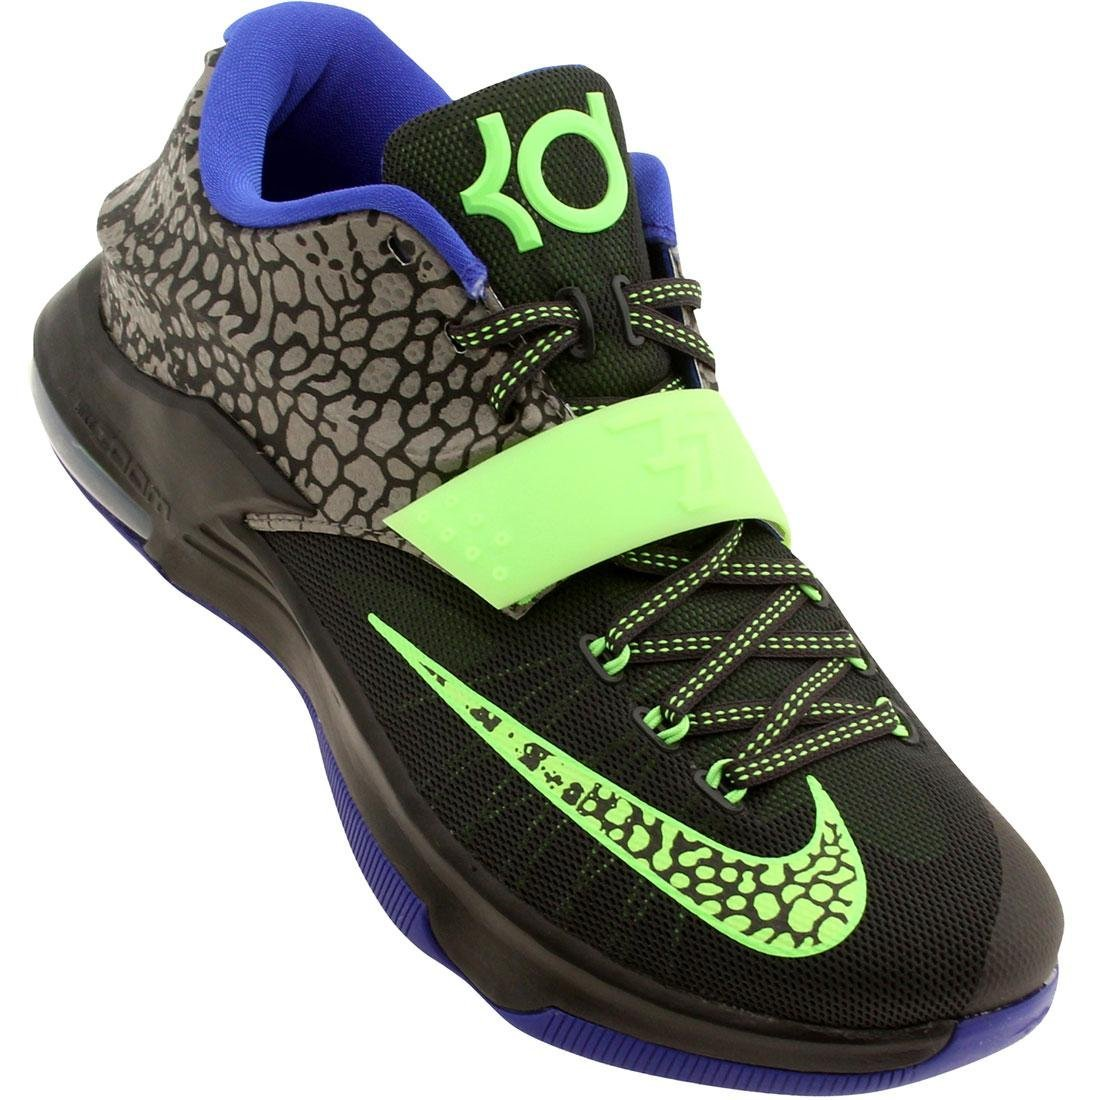 08e69e06b408 ACT NOW AND ORDER YOUR NIKE MEN S KD VII BASKETBALL SHOE TODAY!